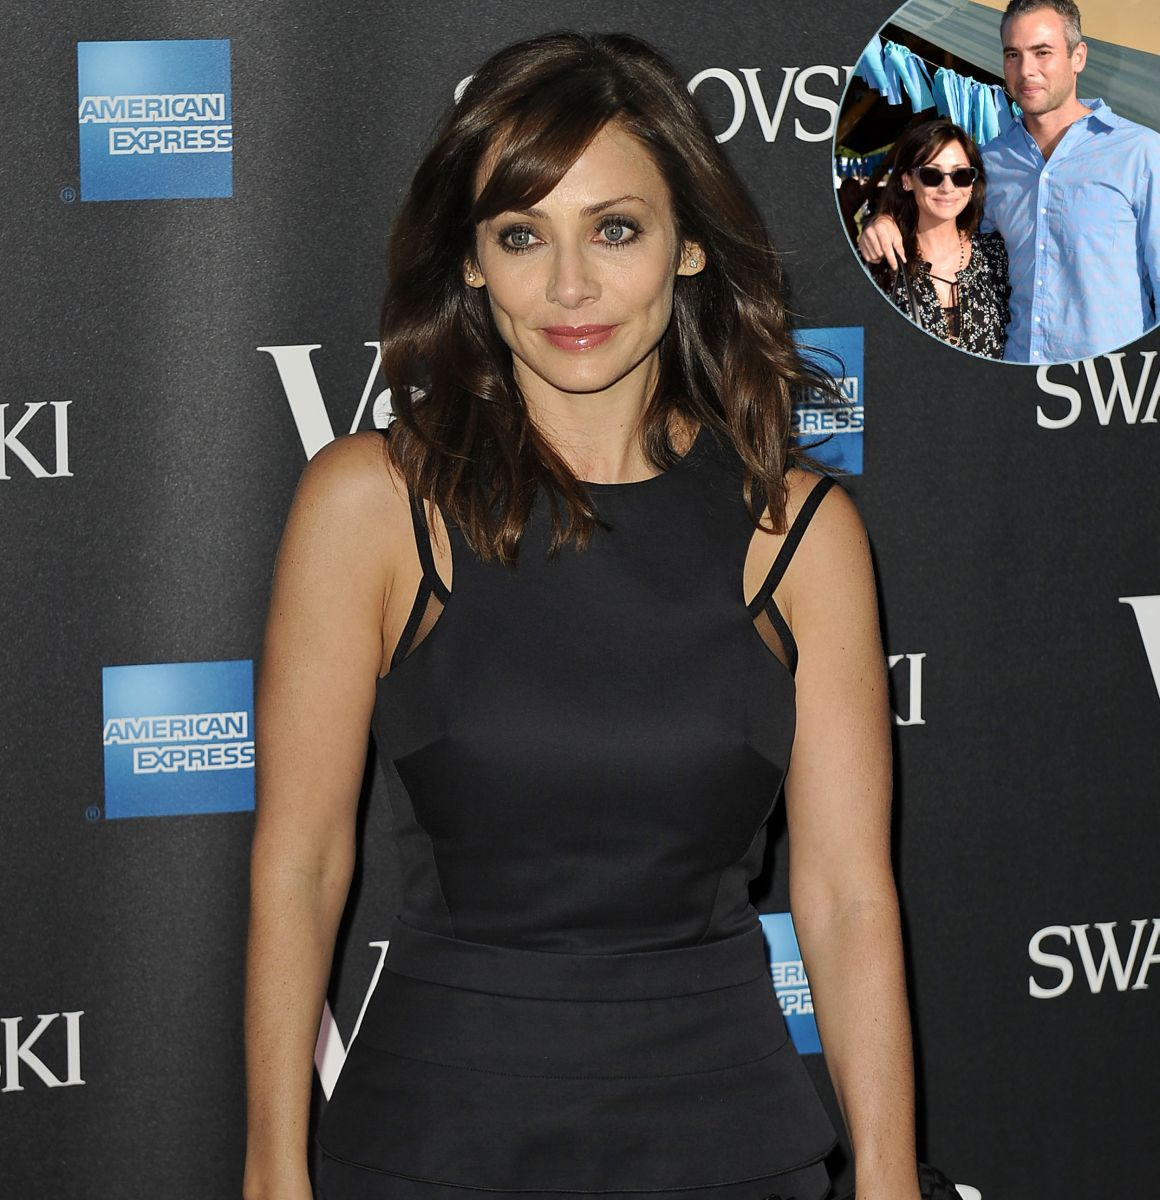 Natalie Imbruglia Left Her Married Life In The Past! Is Blissfully Dating Right Now